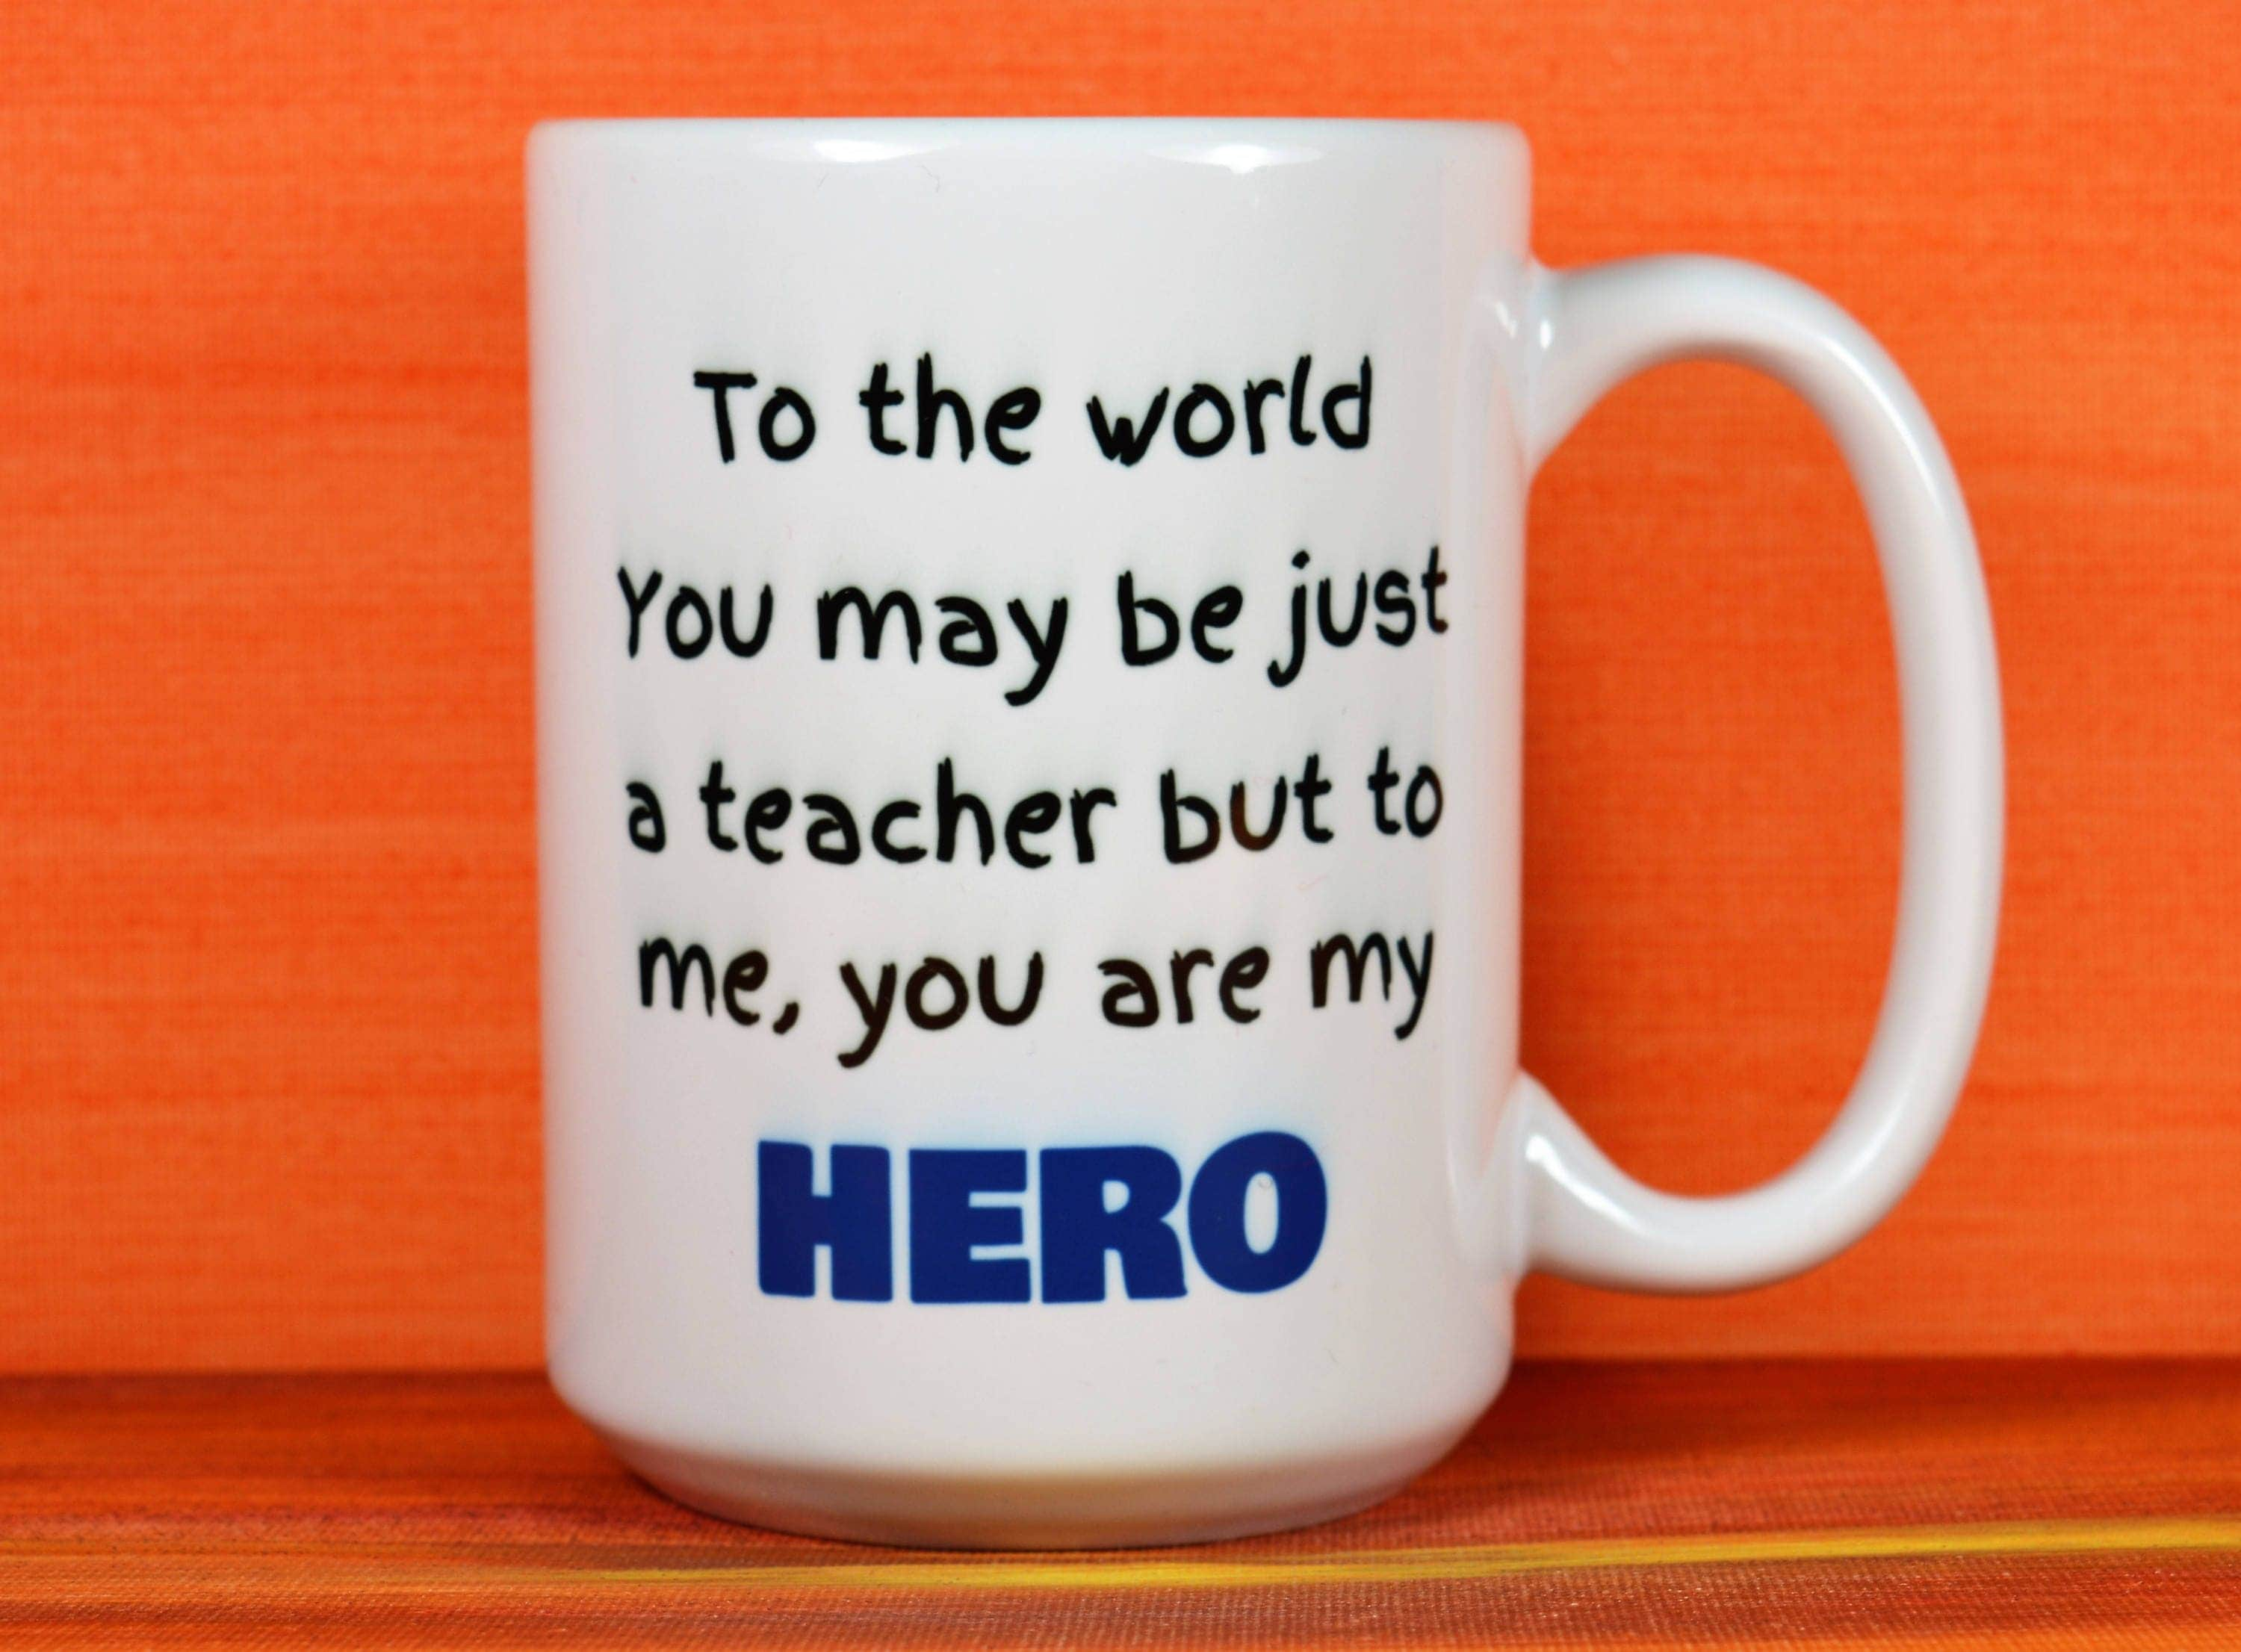 Unusual Personalized Teacher Gifts Pinterest Personalized Teacher Gifts From Class Custom Name Teachers Gift Custom Name Teachers Gift gifts Personalized Teacher Gifts